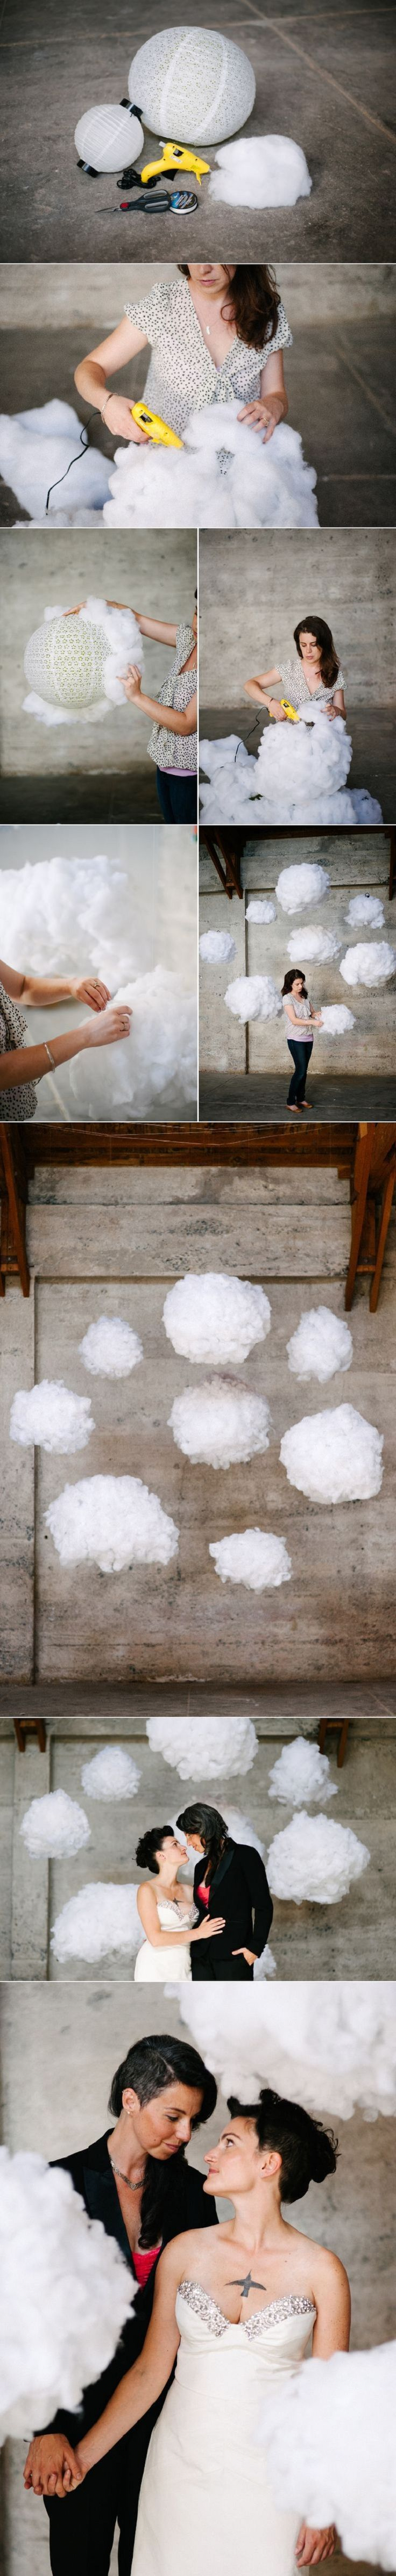 DIY White paper lanterns - http://www.amazon.de/LIHAO-Lampenschirm-Hochtzeit-Dekoration-Ballform/dp/B00UFCL7XM/ref=sr_1_1?ie=UTF8&qid=1441685765&sr=8-1&keywords=papier+laterne